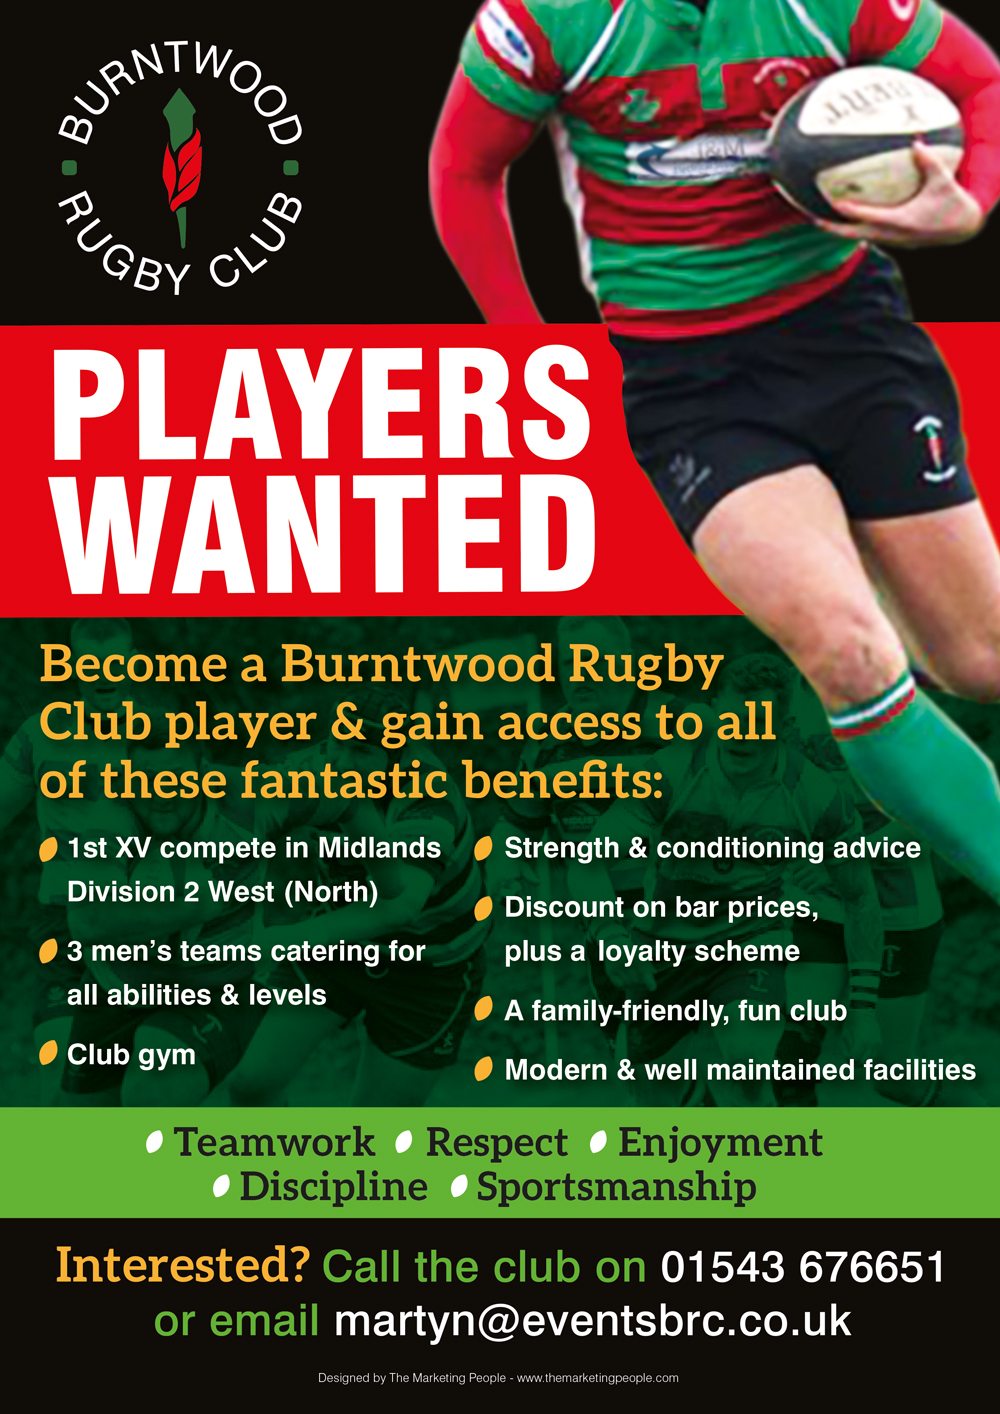 The Benefits of Becoming a Burntwood Rugby Club Player